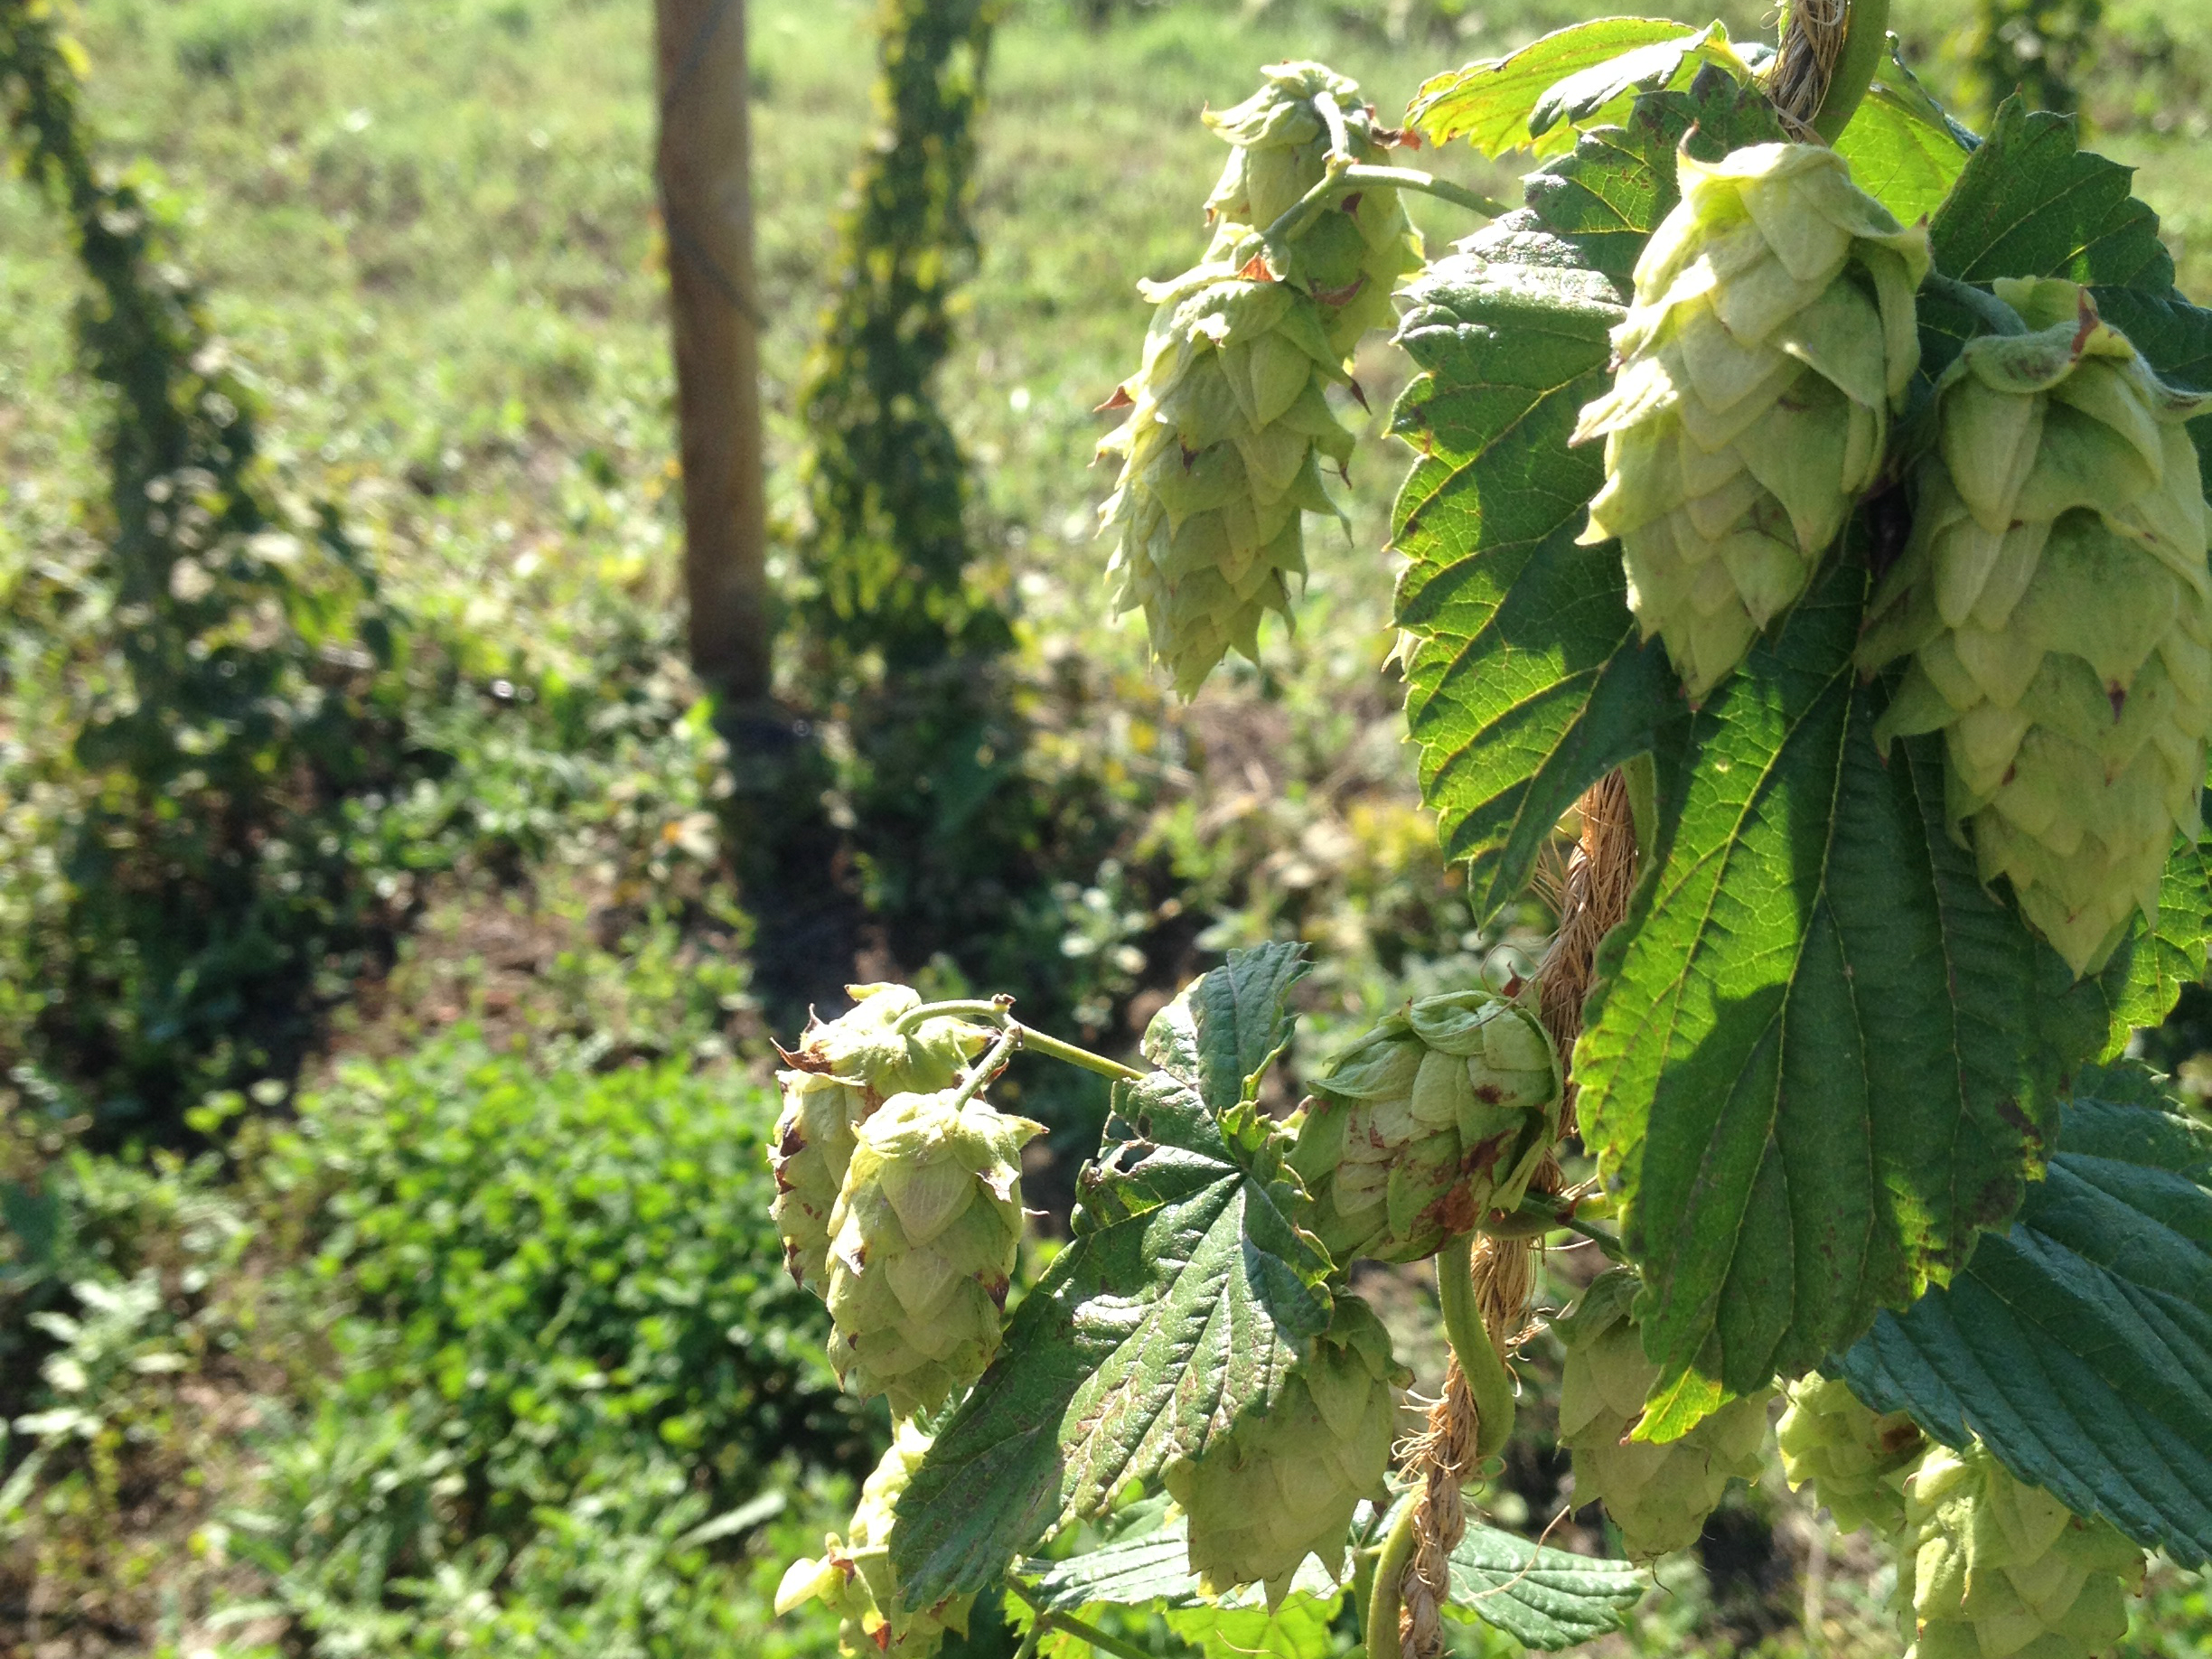 PHOTO: Hops on the Bine